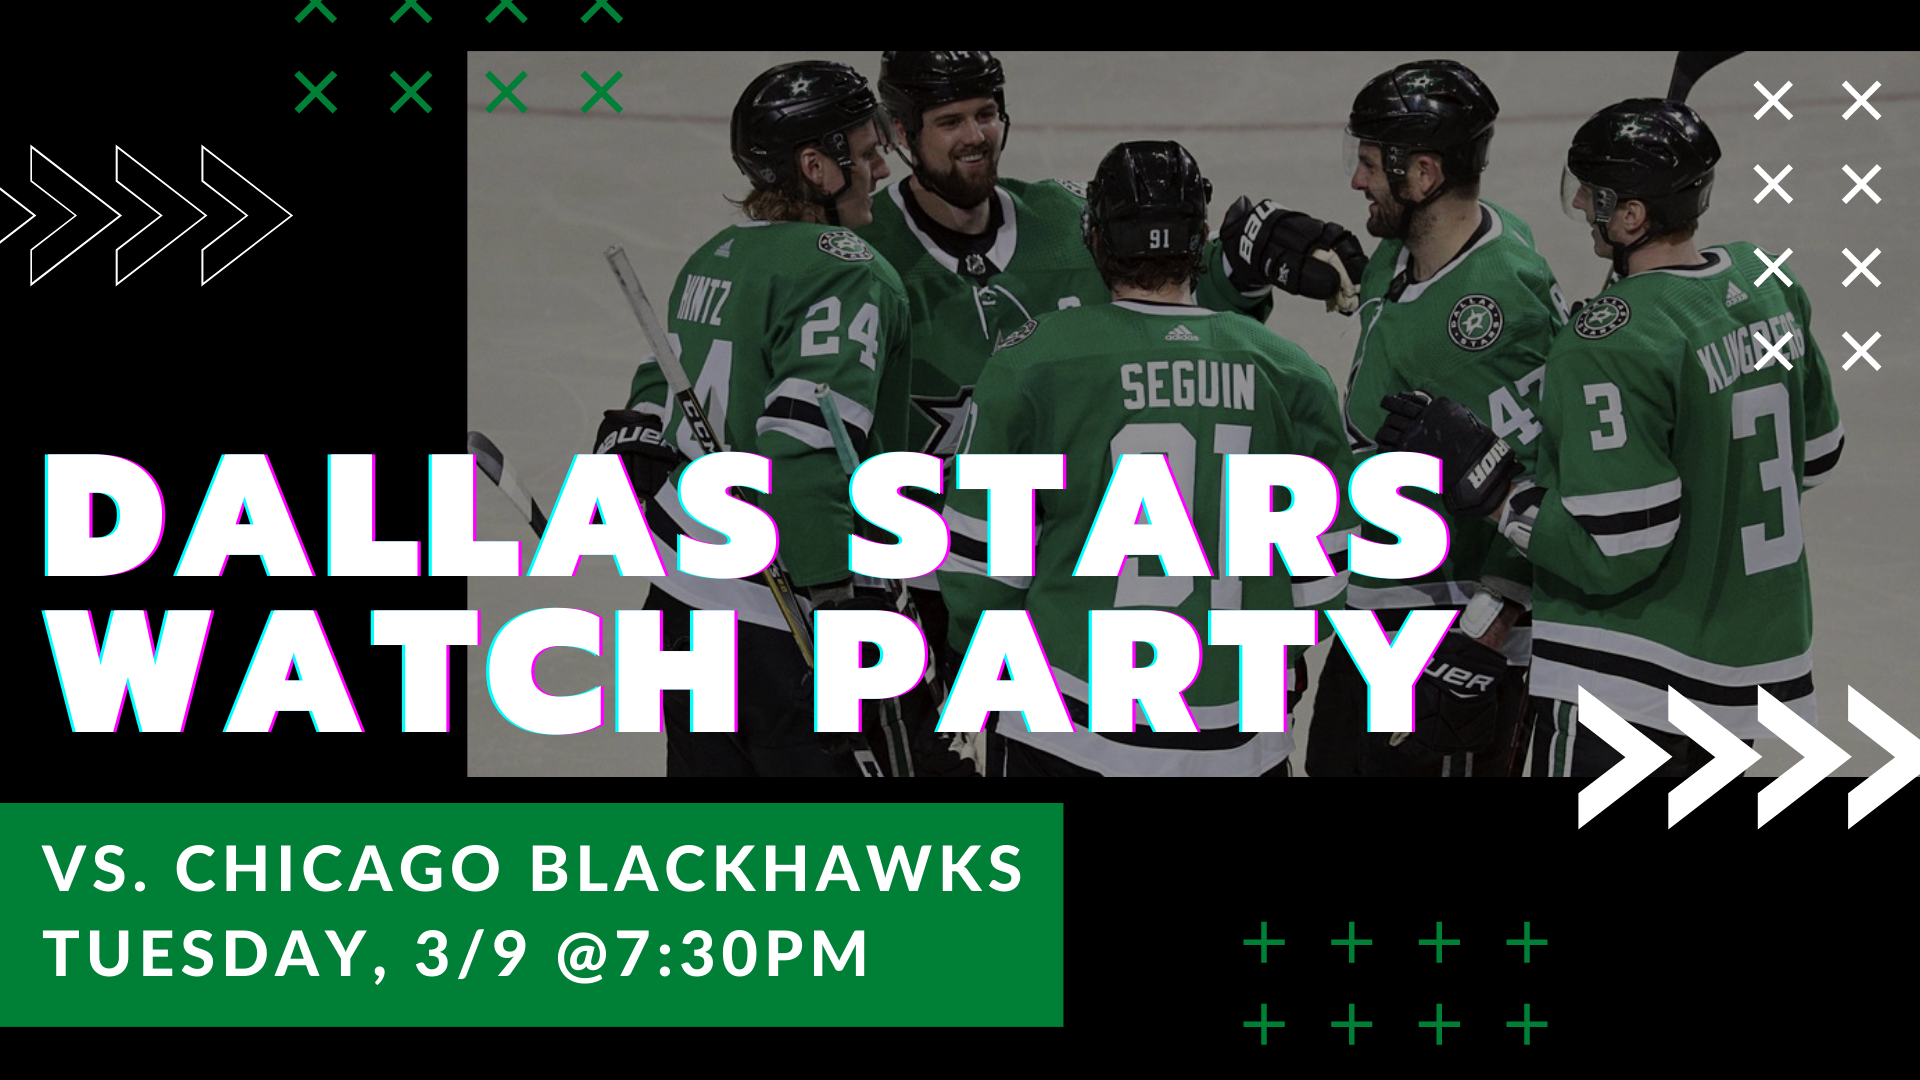 Promo image of Blackhawks v. Stars Watch Party